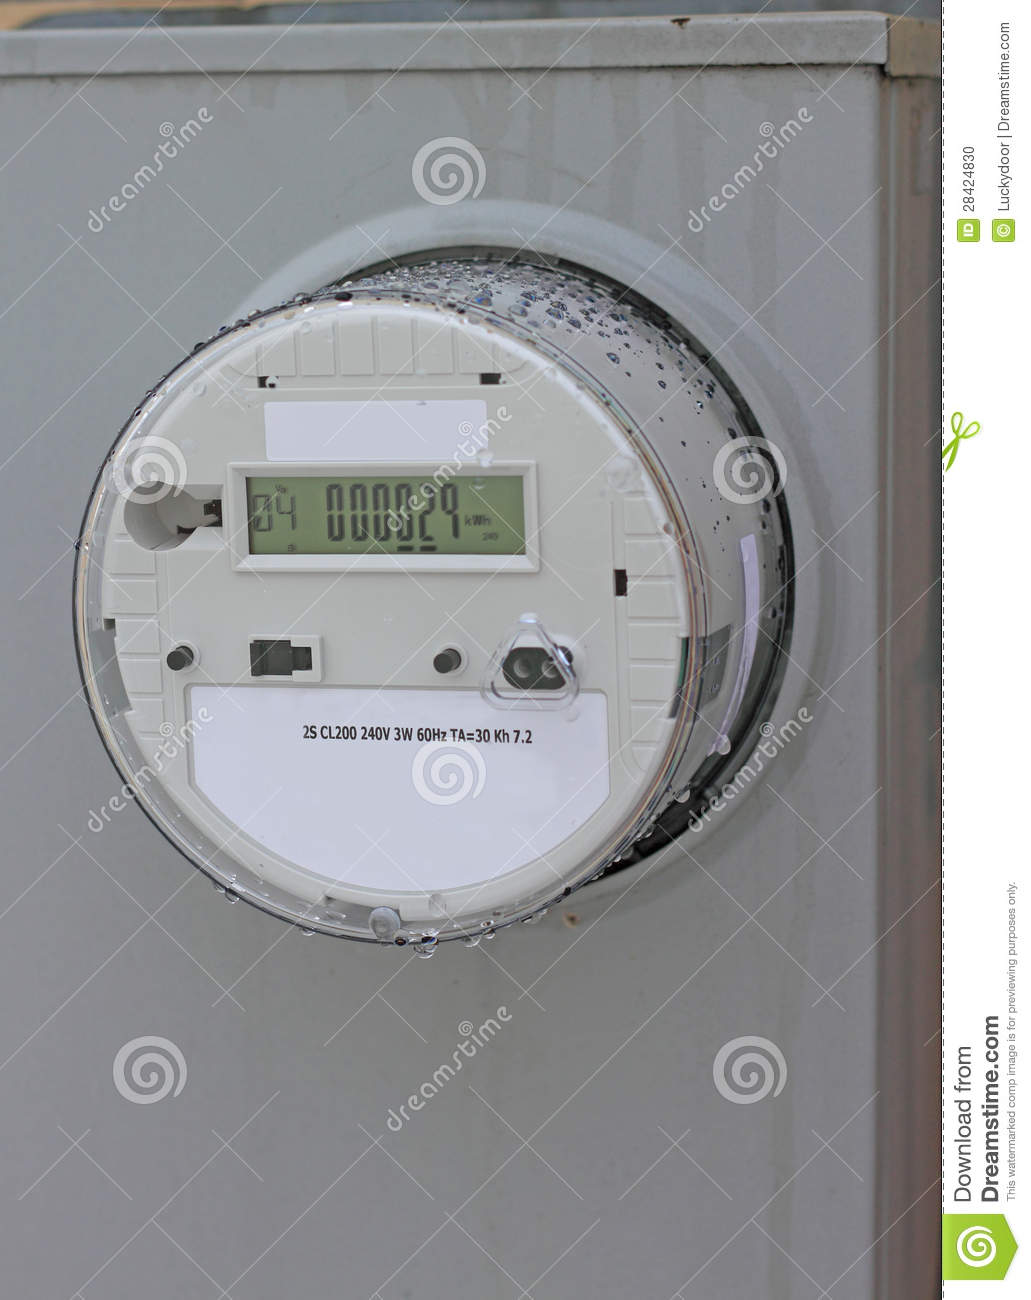 Residential Energy Meter : Smart meter stock photo image